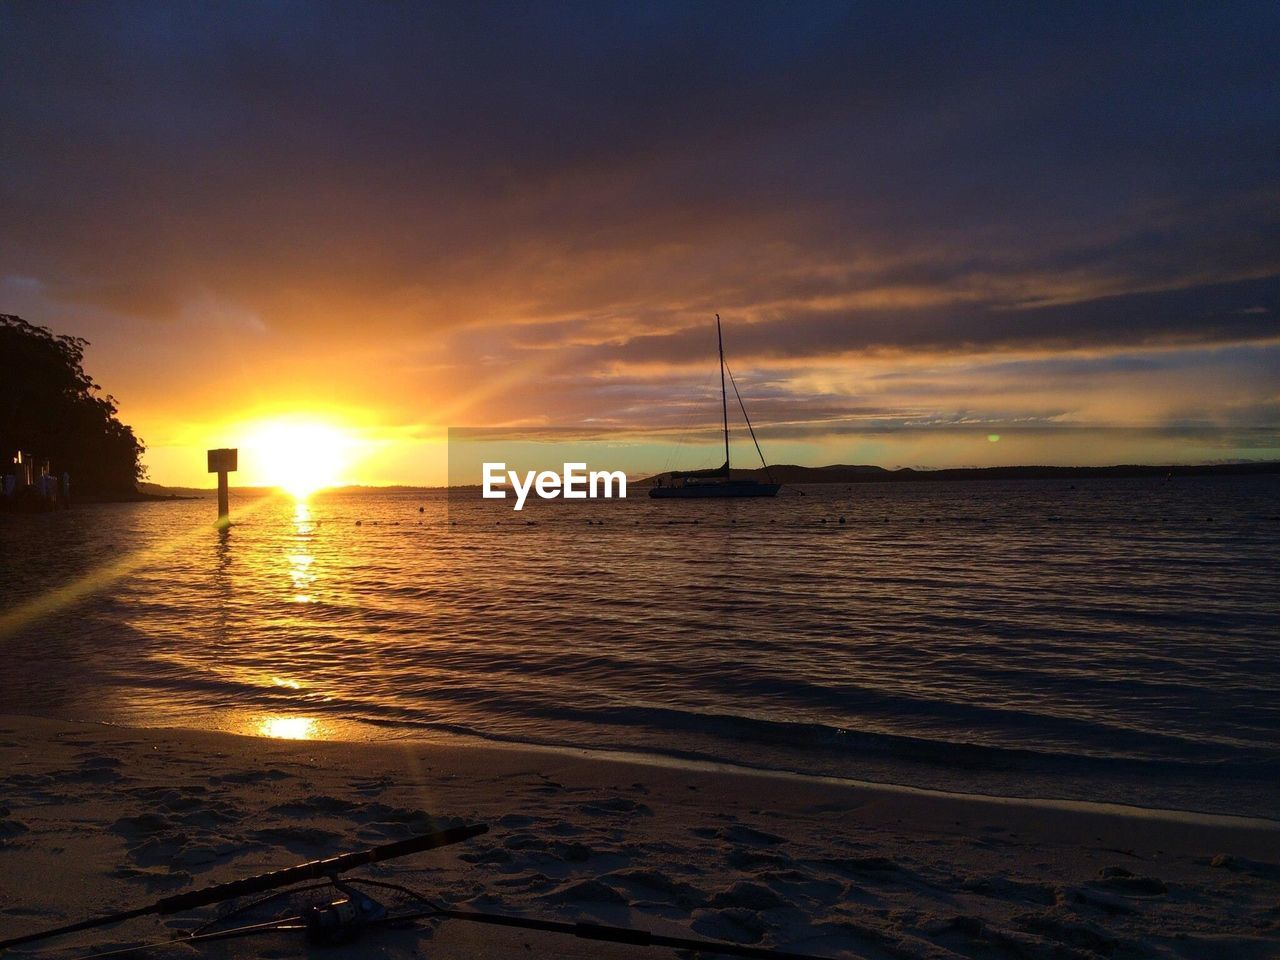 sunset, sea, water, sky, scenics, beauty in nature, nature, nautical vessel, sun, tranquil scene, tranquility, outdoors, sailboat, no people, cloud - sky, reflection, transportation, beach, sunlight, horizon over water, yacht, mast, sailing